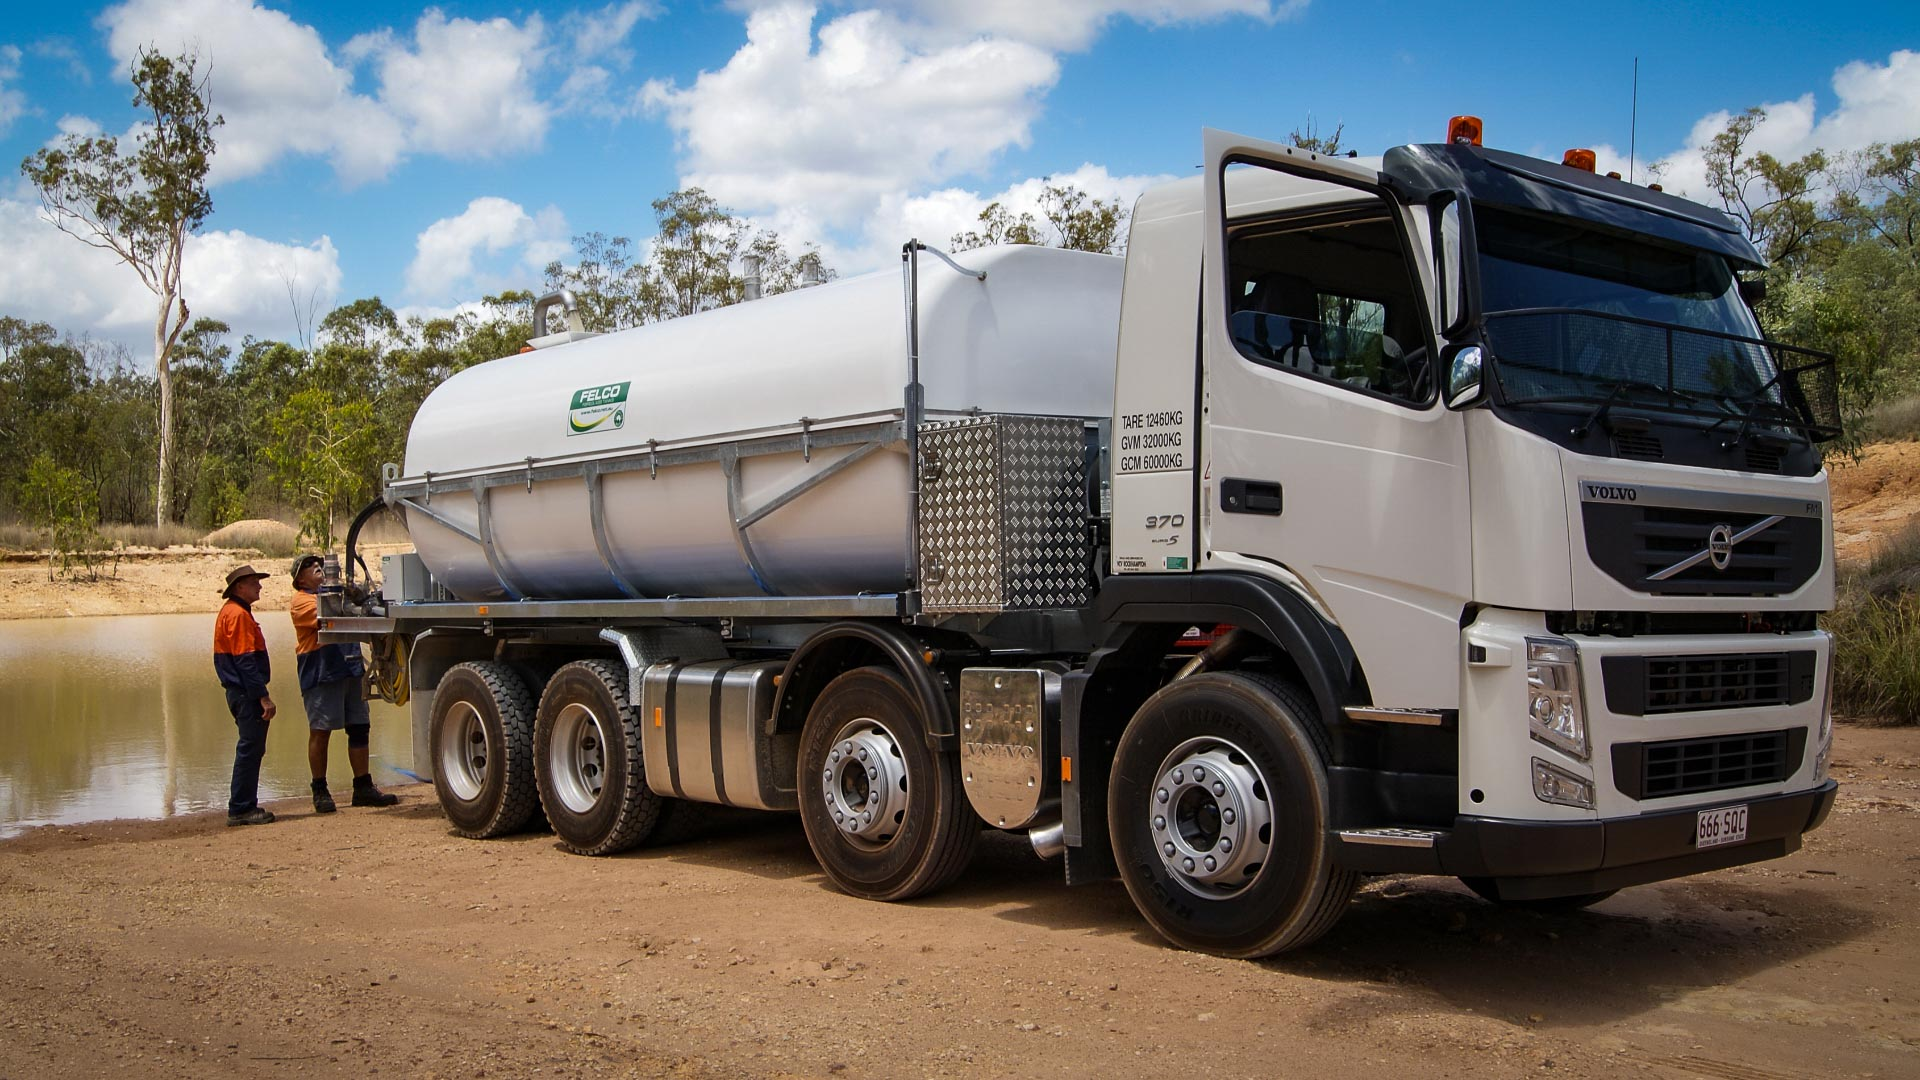 8 Wheeler - 16,000 Litre Capacity with Independant Pumping System